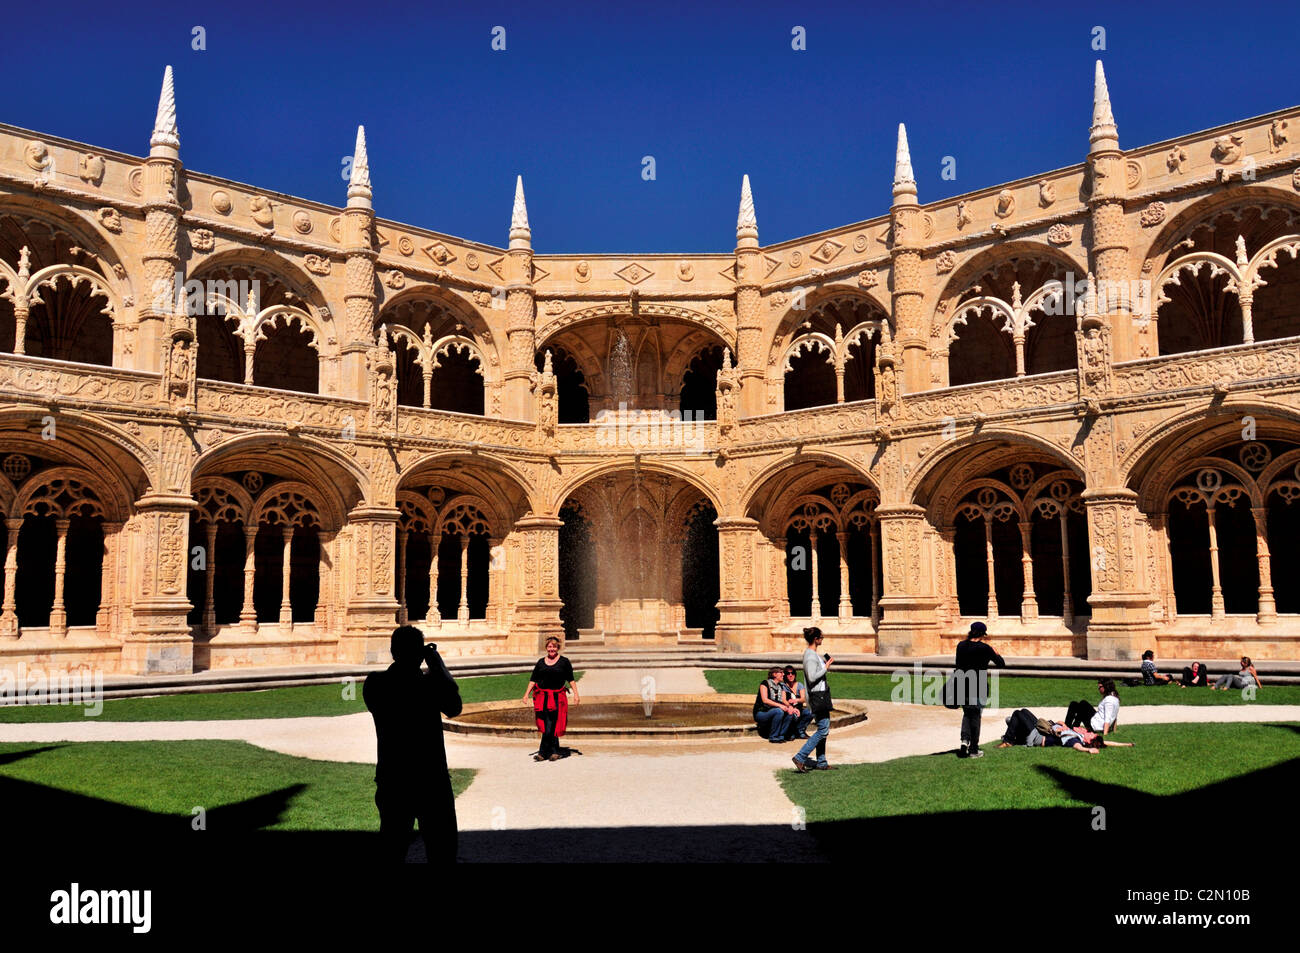 Portugal, Lisbon: Cloister of Monastery of St. Jerome in Belem - Stock Image